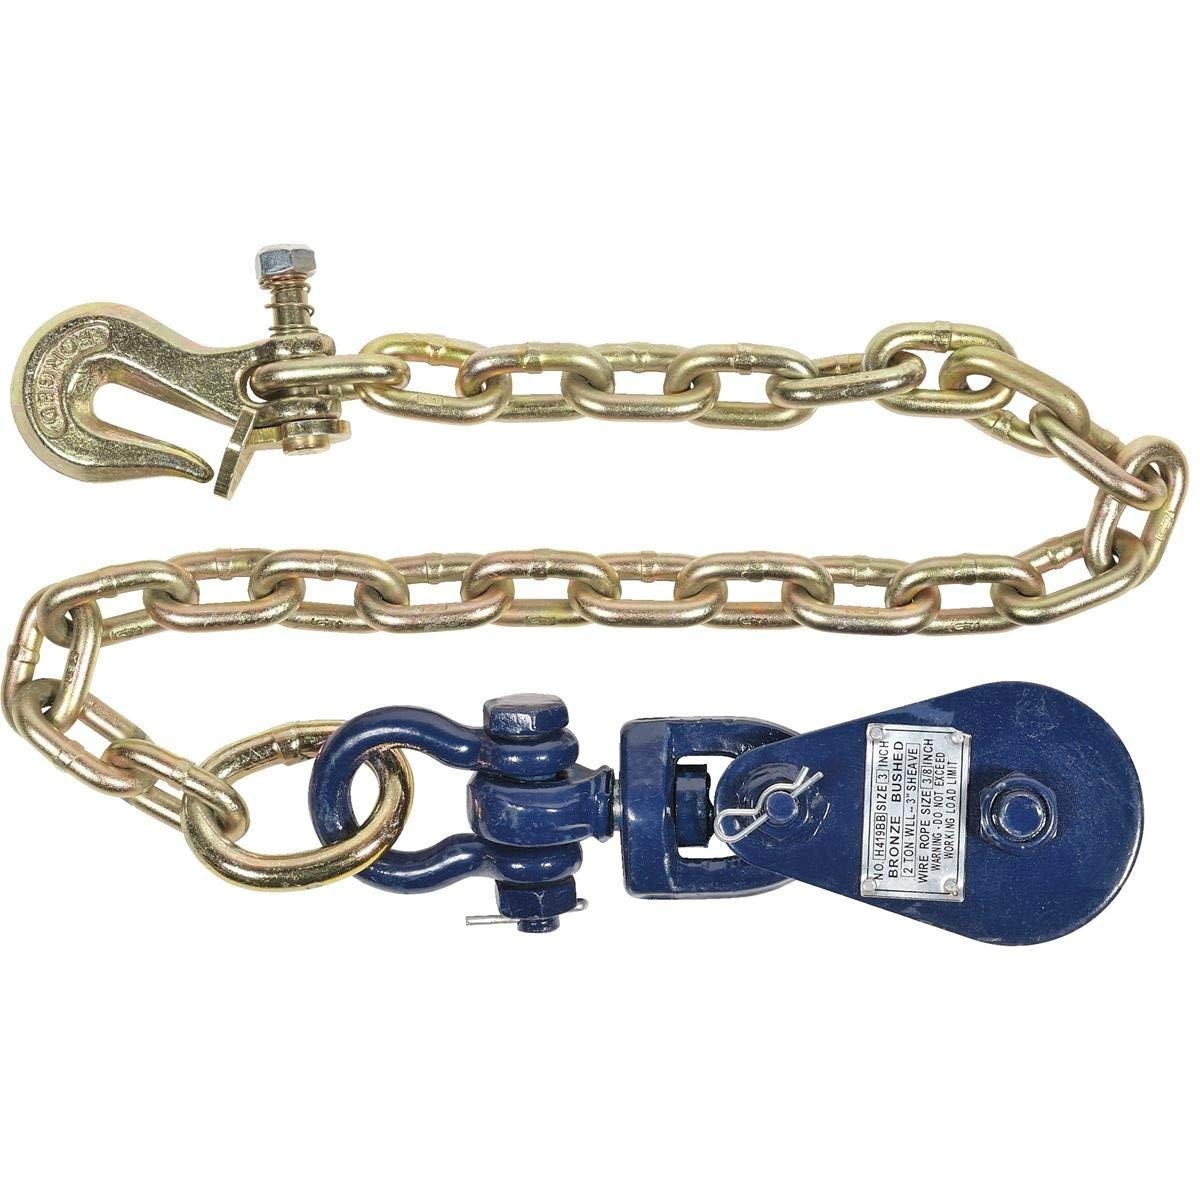 BA Products Nice 6I-2TSW30TL 2 Ton Snatch Block with Chain and Twist Lock/Lockable Grab Hook for Rollbacks, Wreckers, Tow Trucks, Farm and More! by BA Products